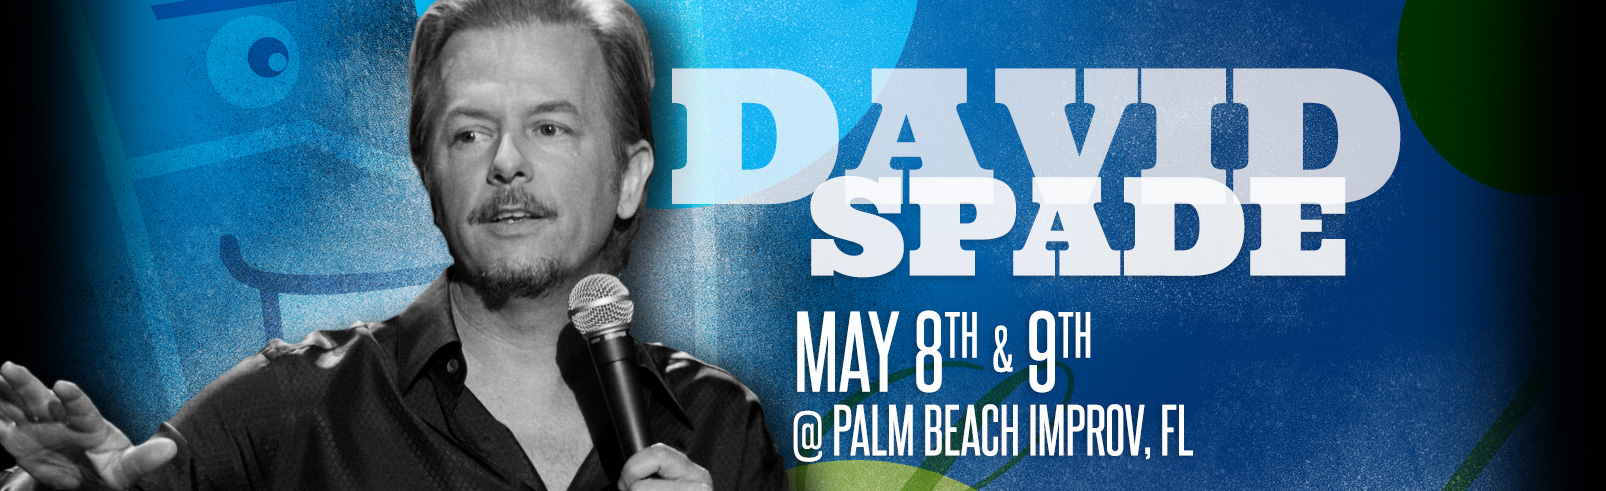 David Spade @ Palm Beach Improv